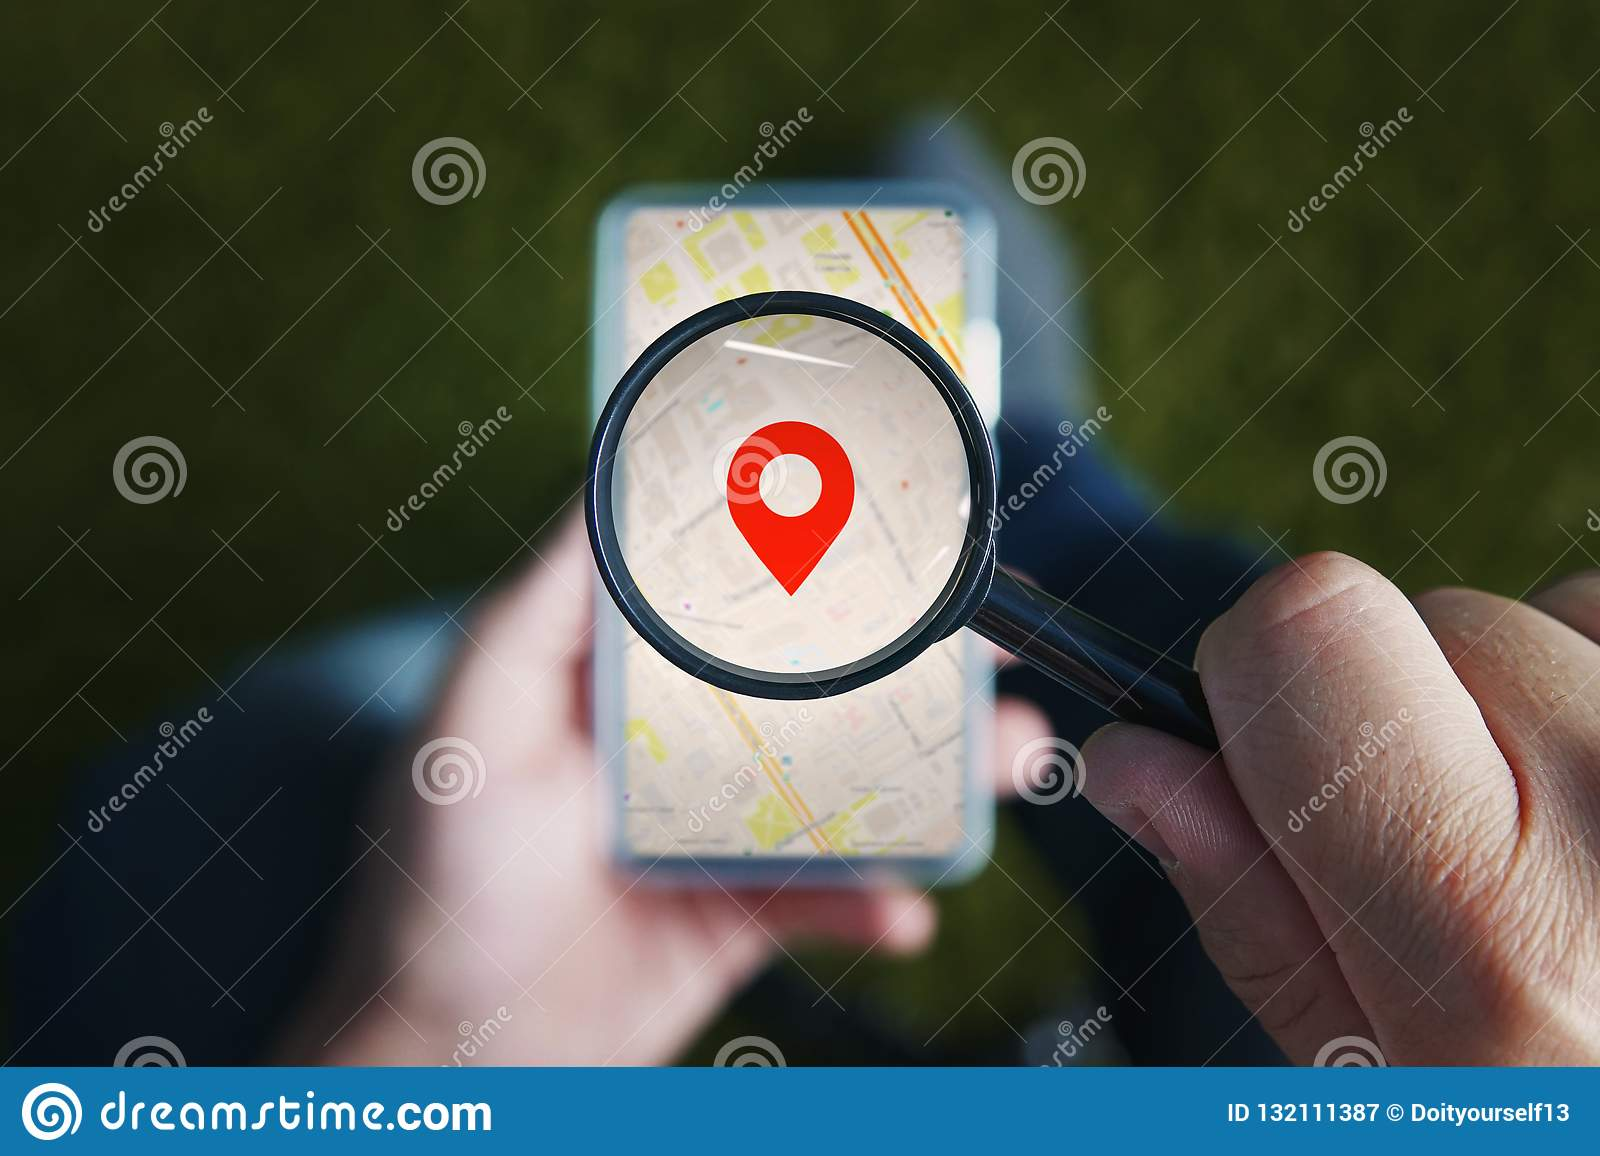 Shot of male hands holding magnifying glass with the red icon of geo-location and looking through it to the smartphone